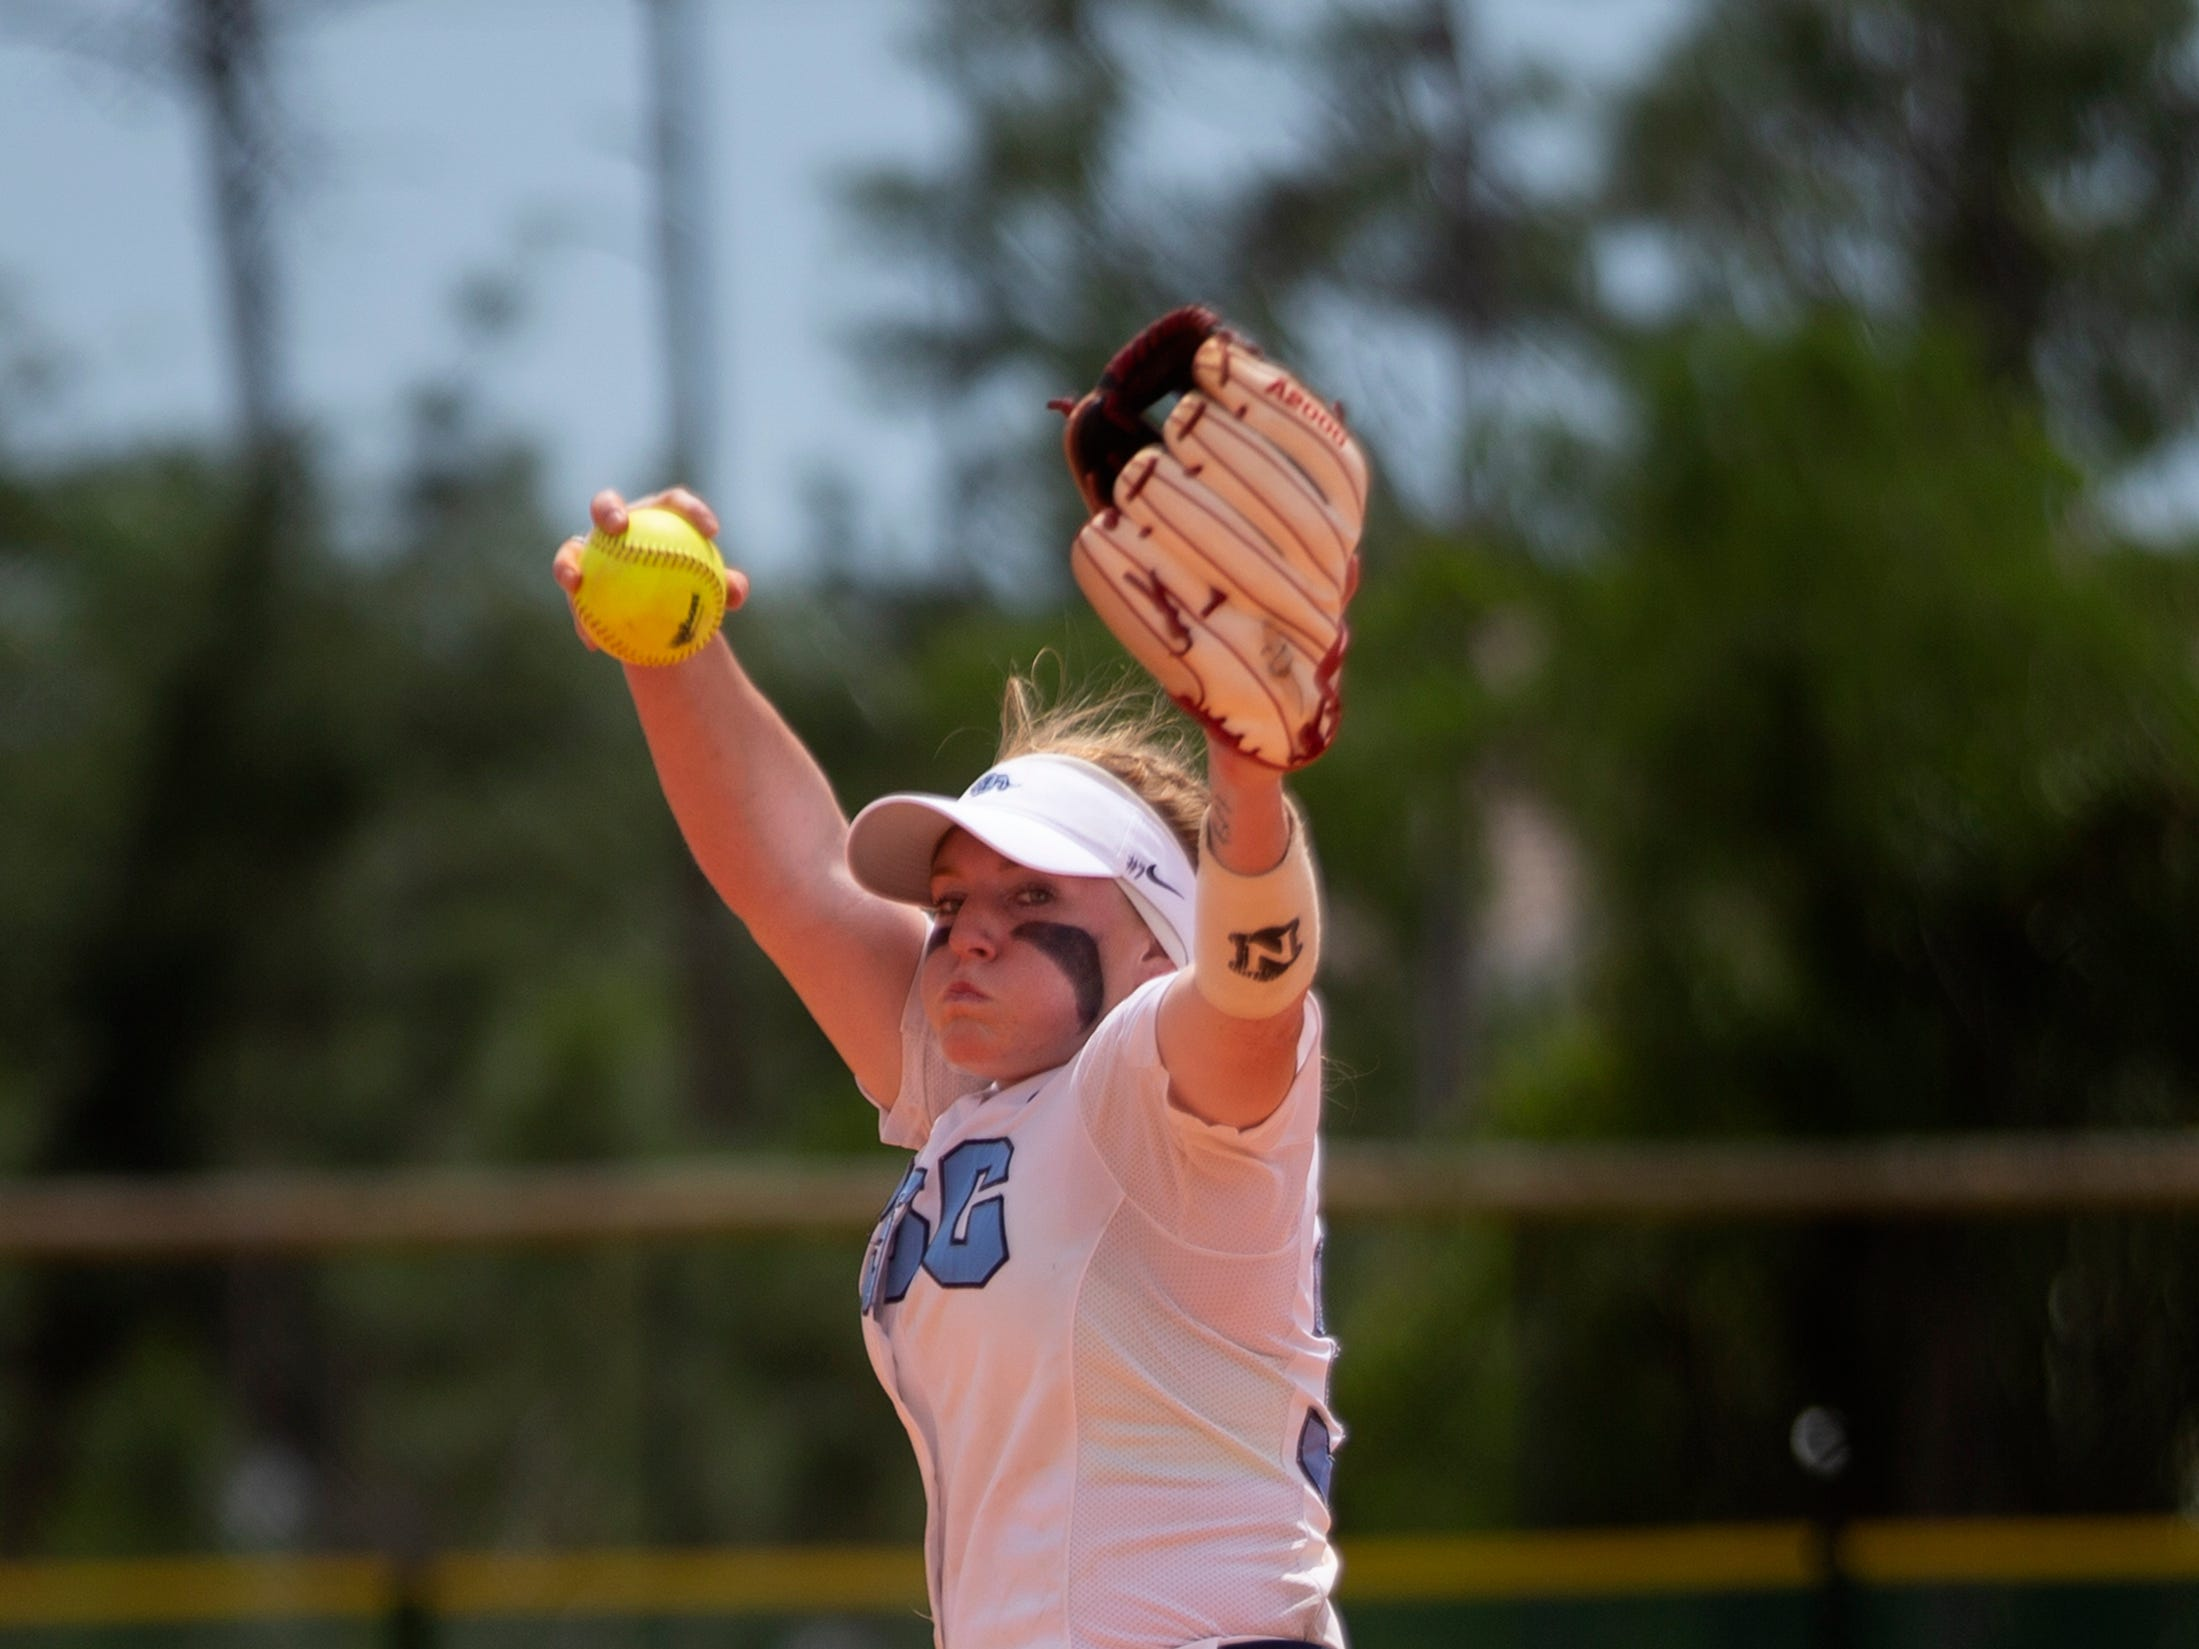 Coral Springs Charter School's Cassidy Crump delivers a pitch against Robinson during the championship game at the Longshore Memorial softball tournament, Saturday, April 13, 2019, at North Collier Regional Park in North Naples.